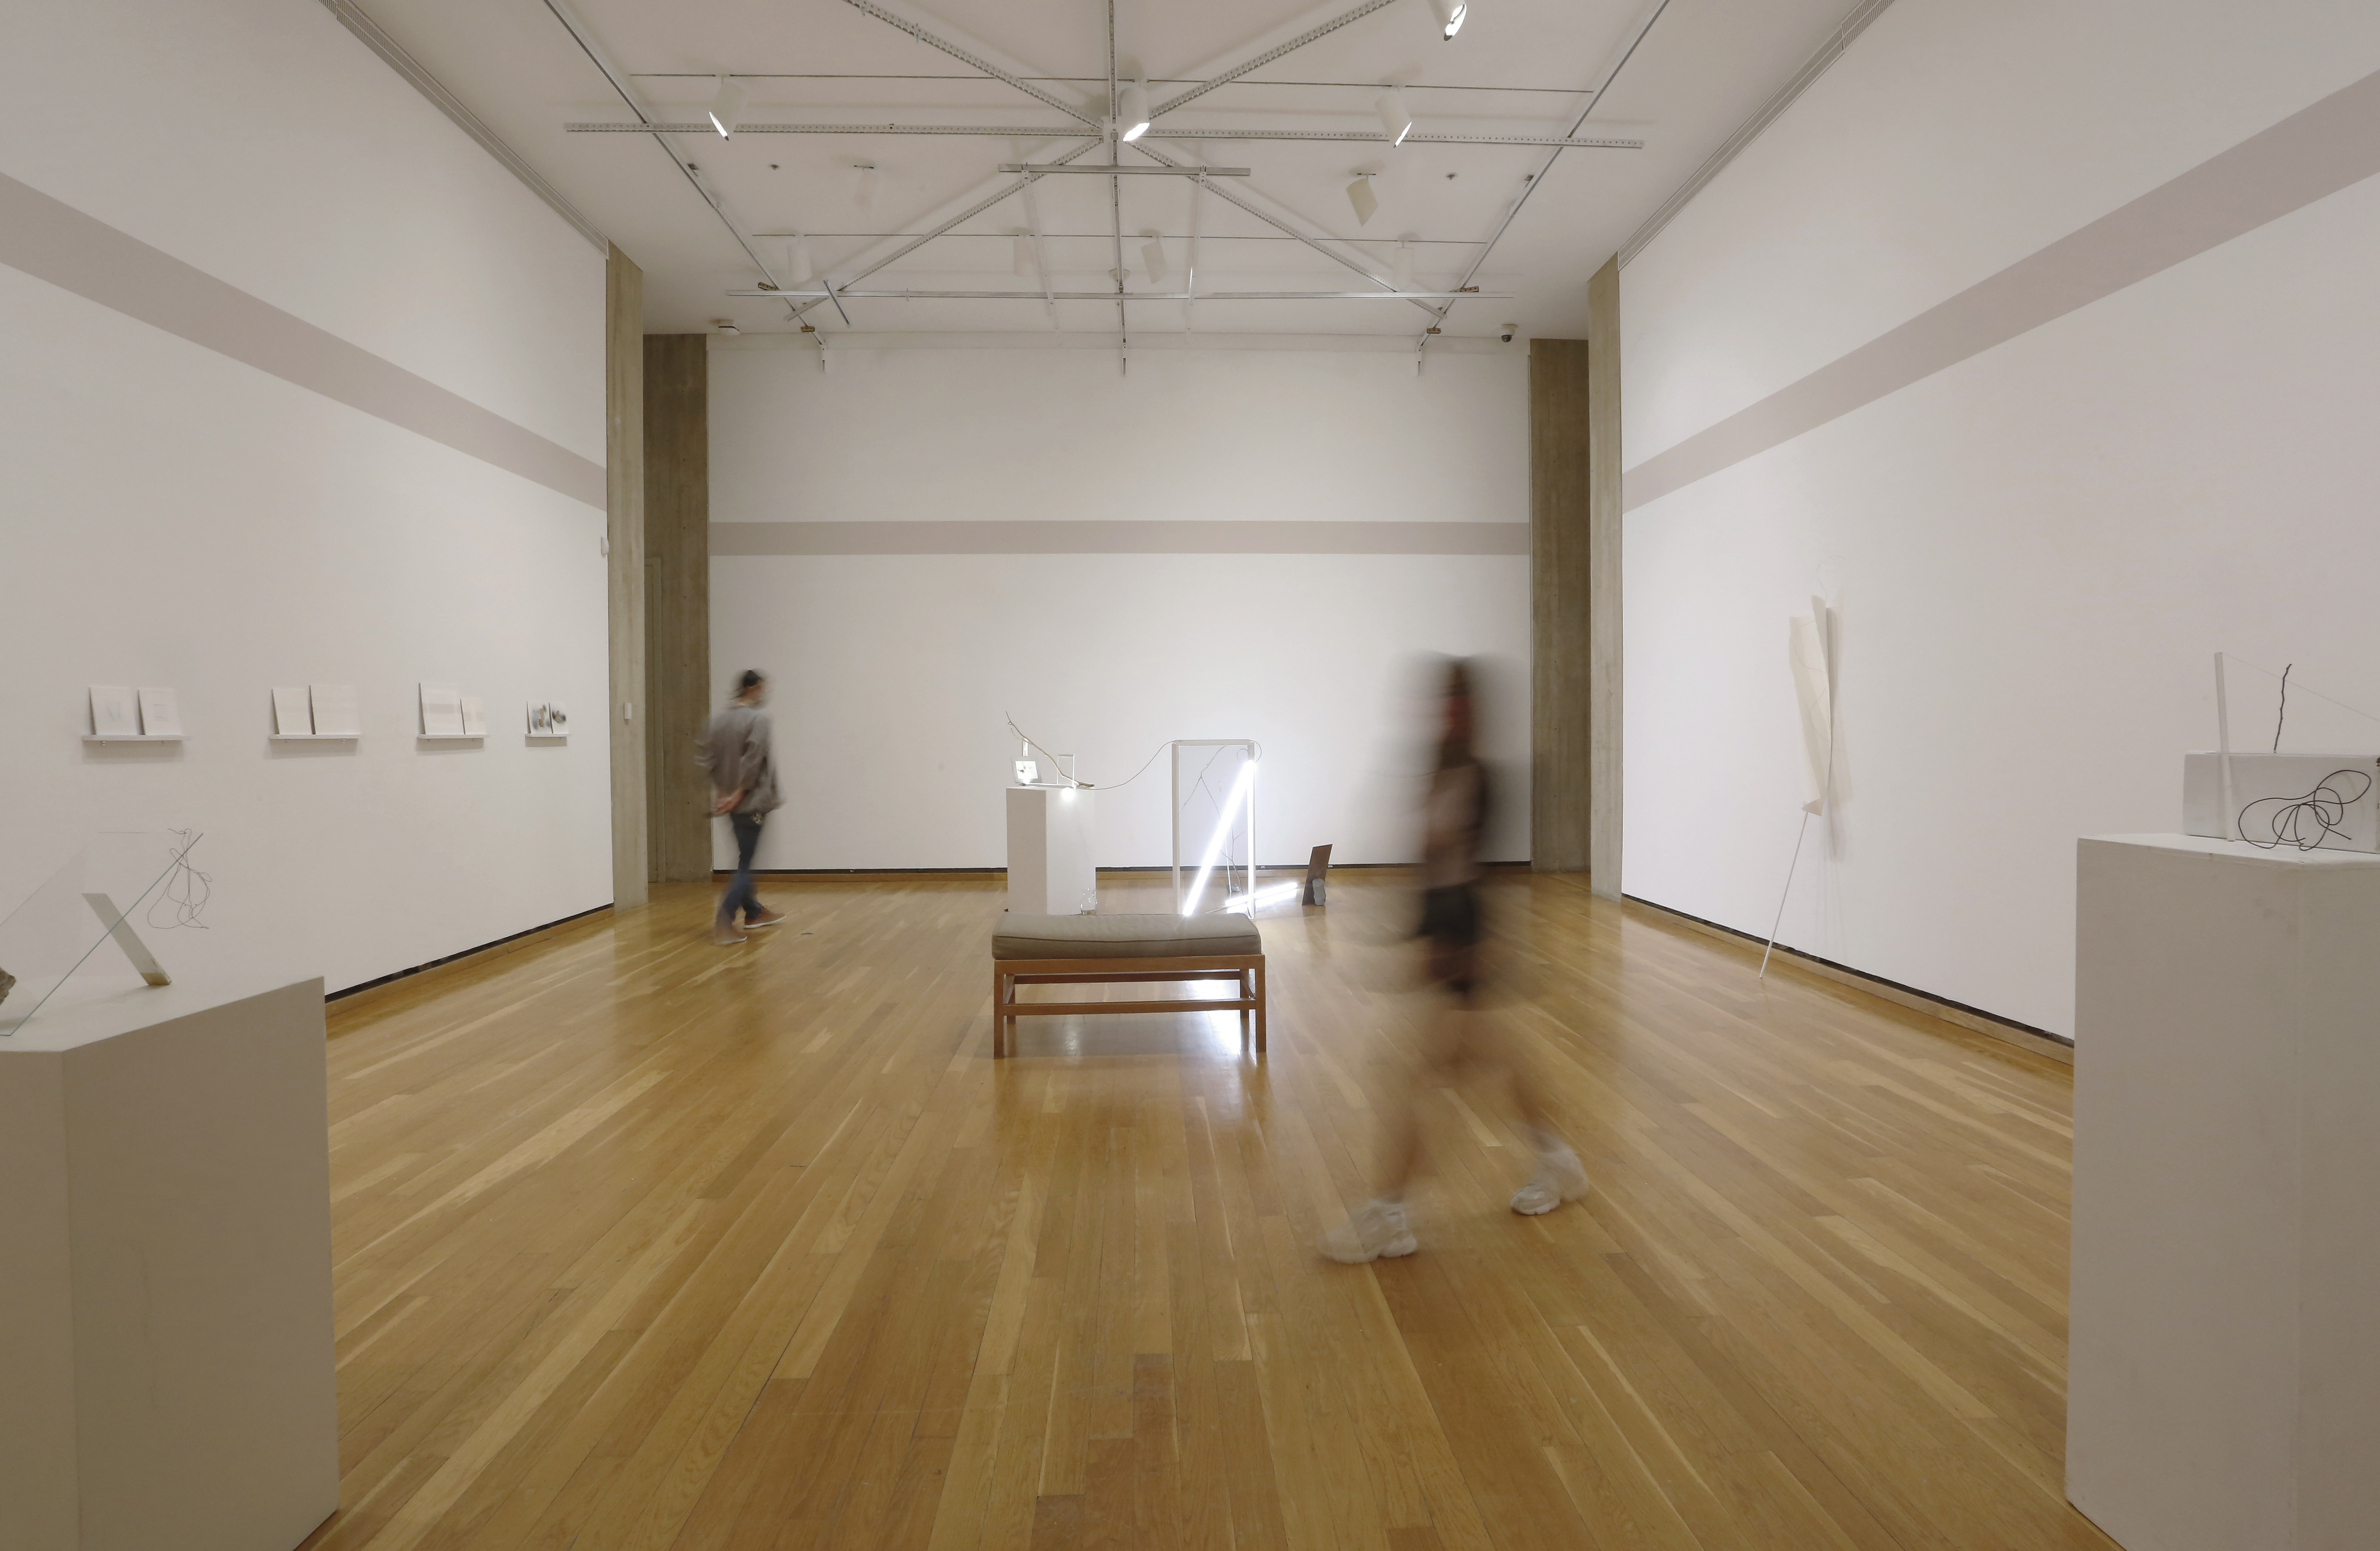 A person in a gallery with light wood flooring and white walls.